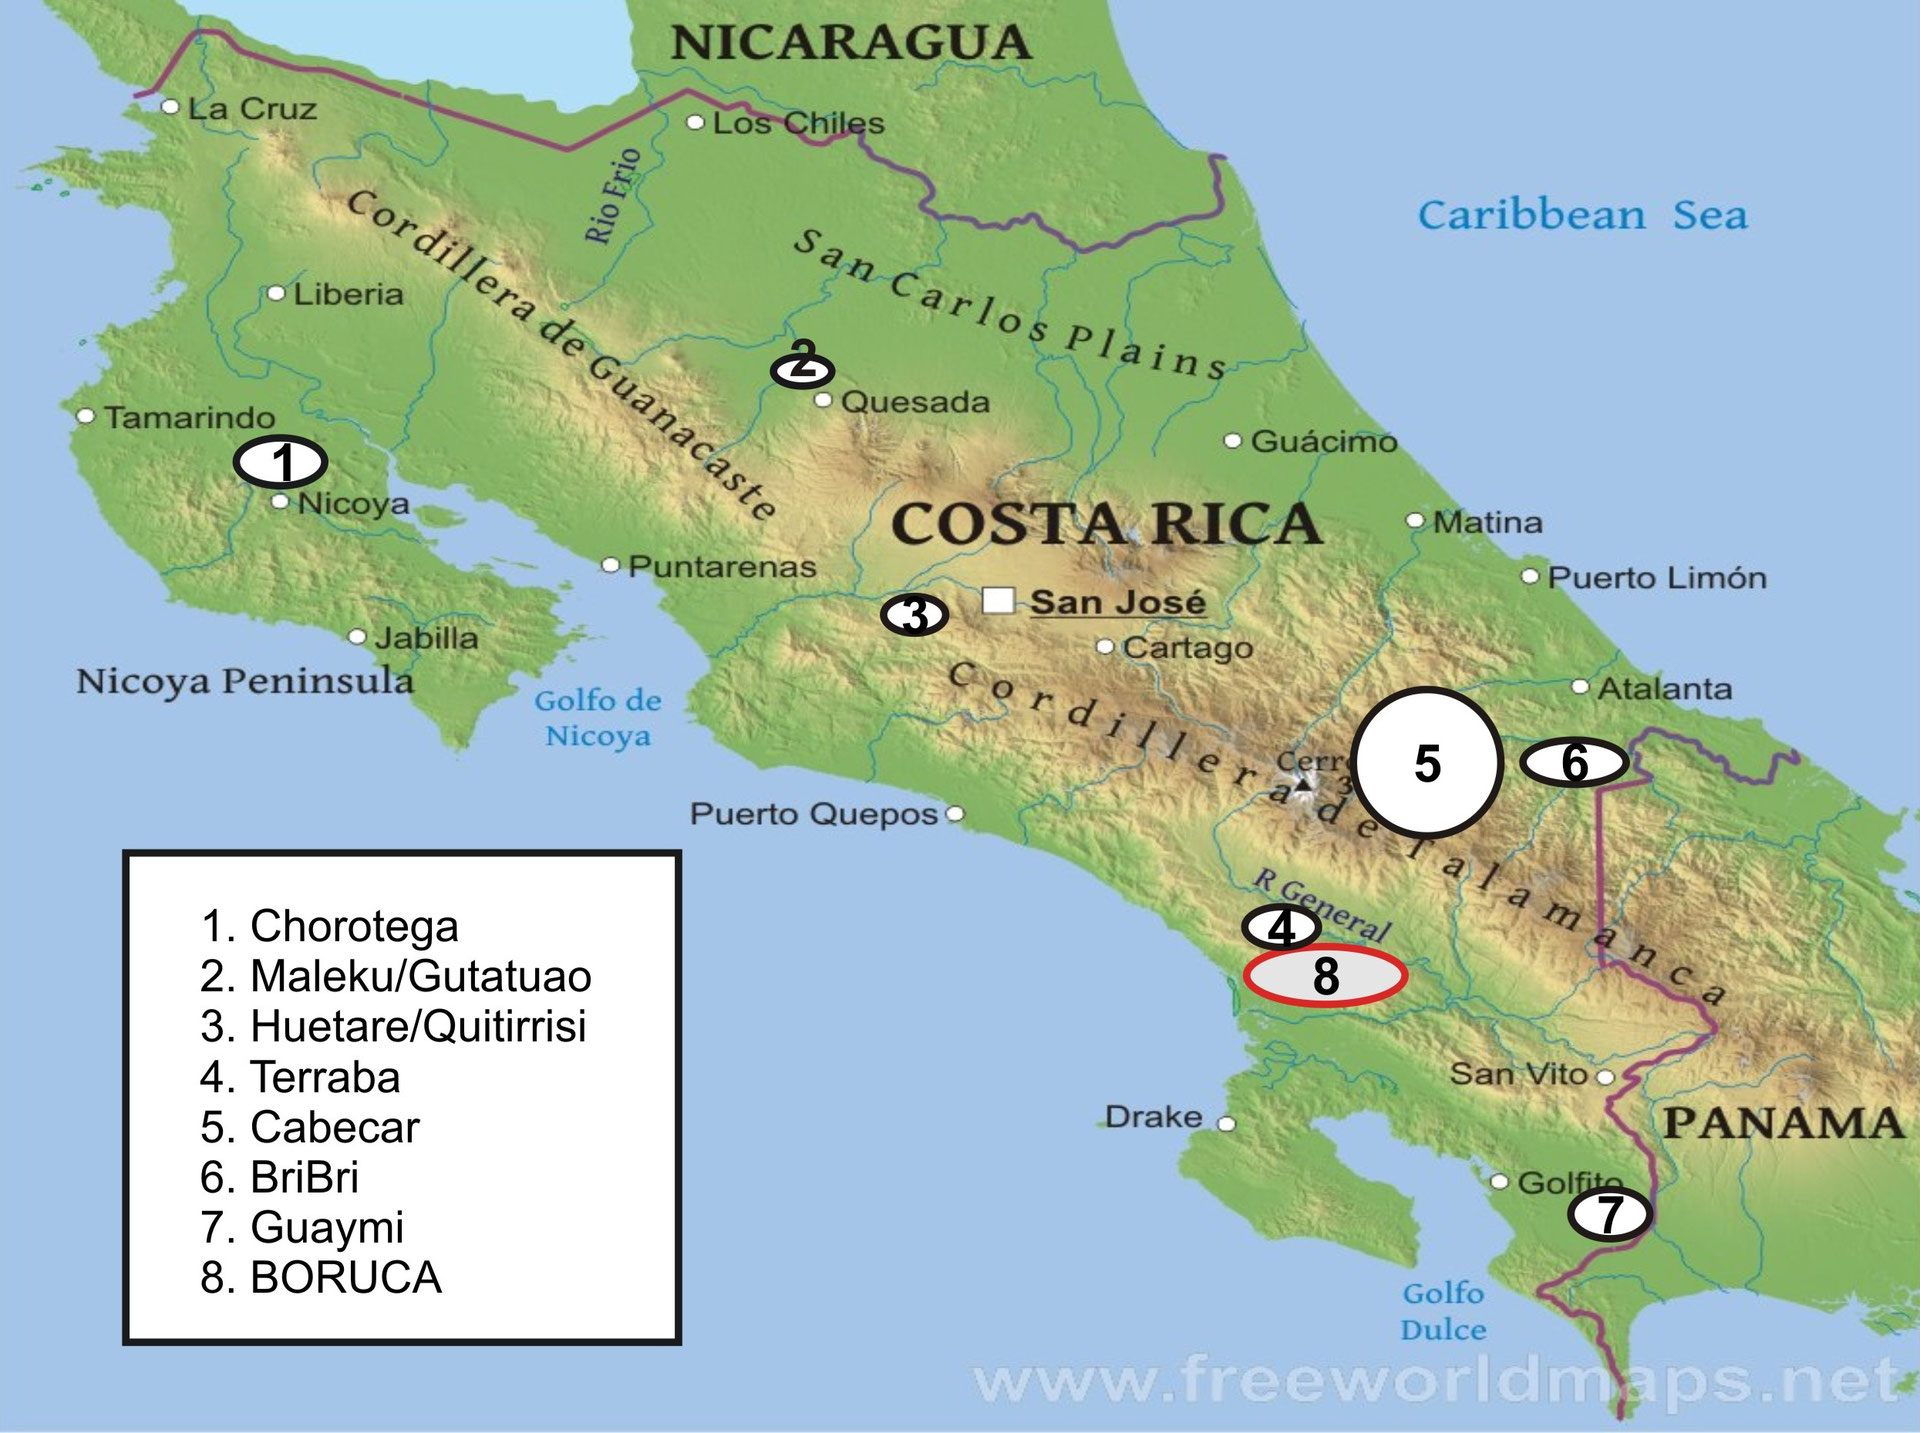 Indigenous groups in Costa Rica